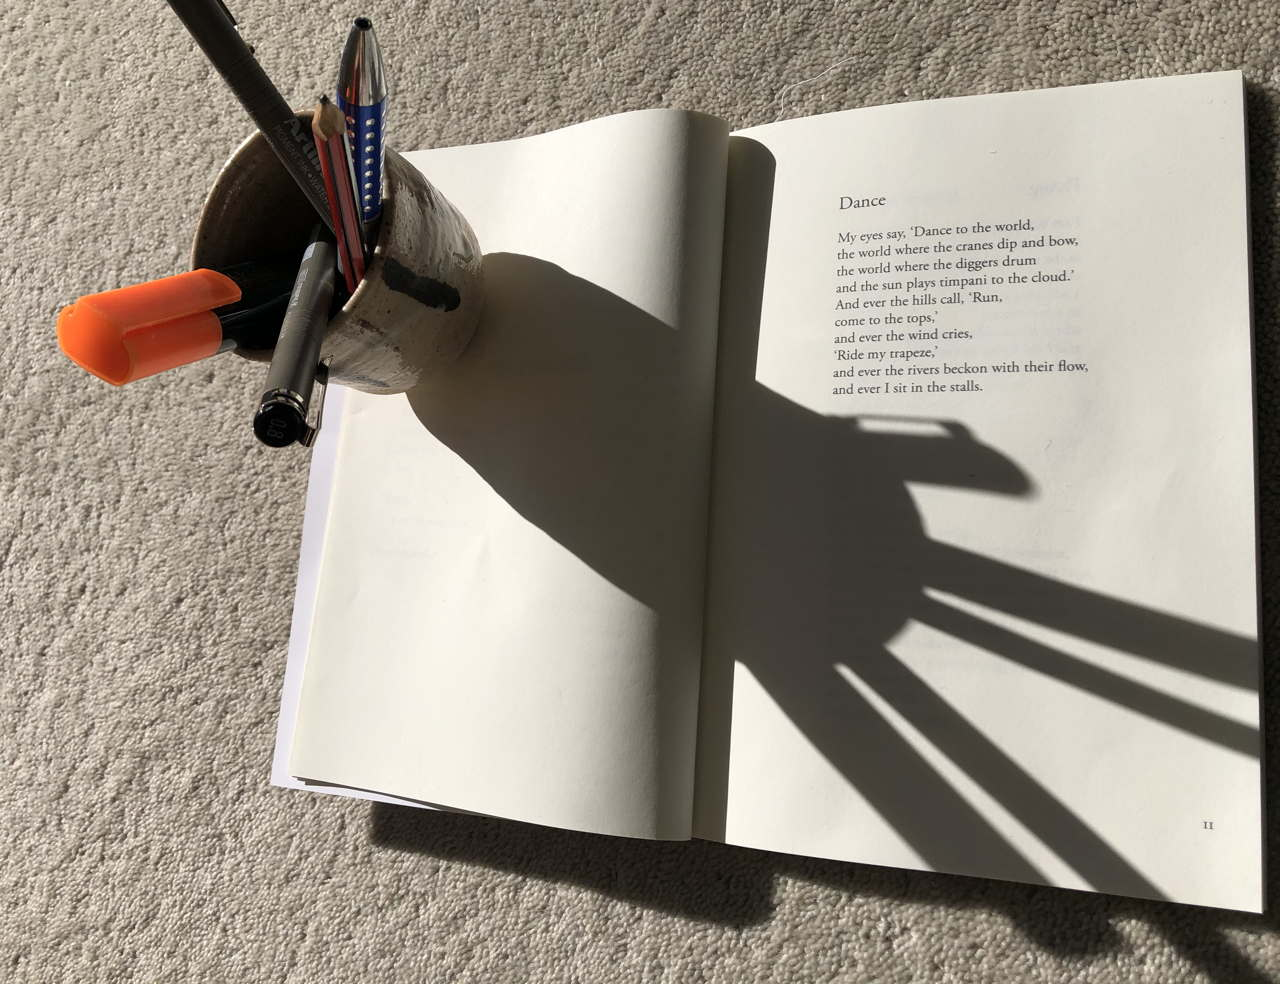 Photo of a cup of pens on a poetry book.